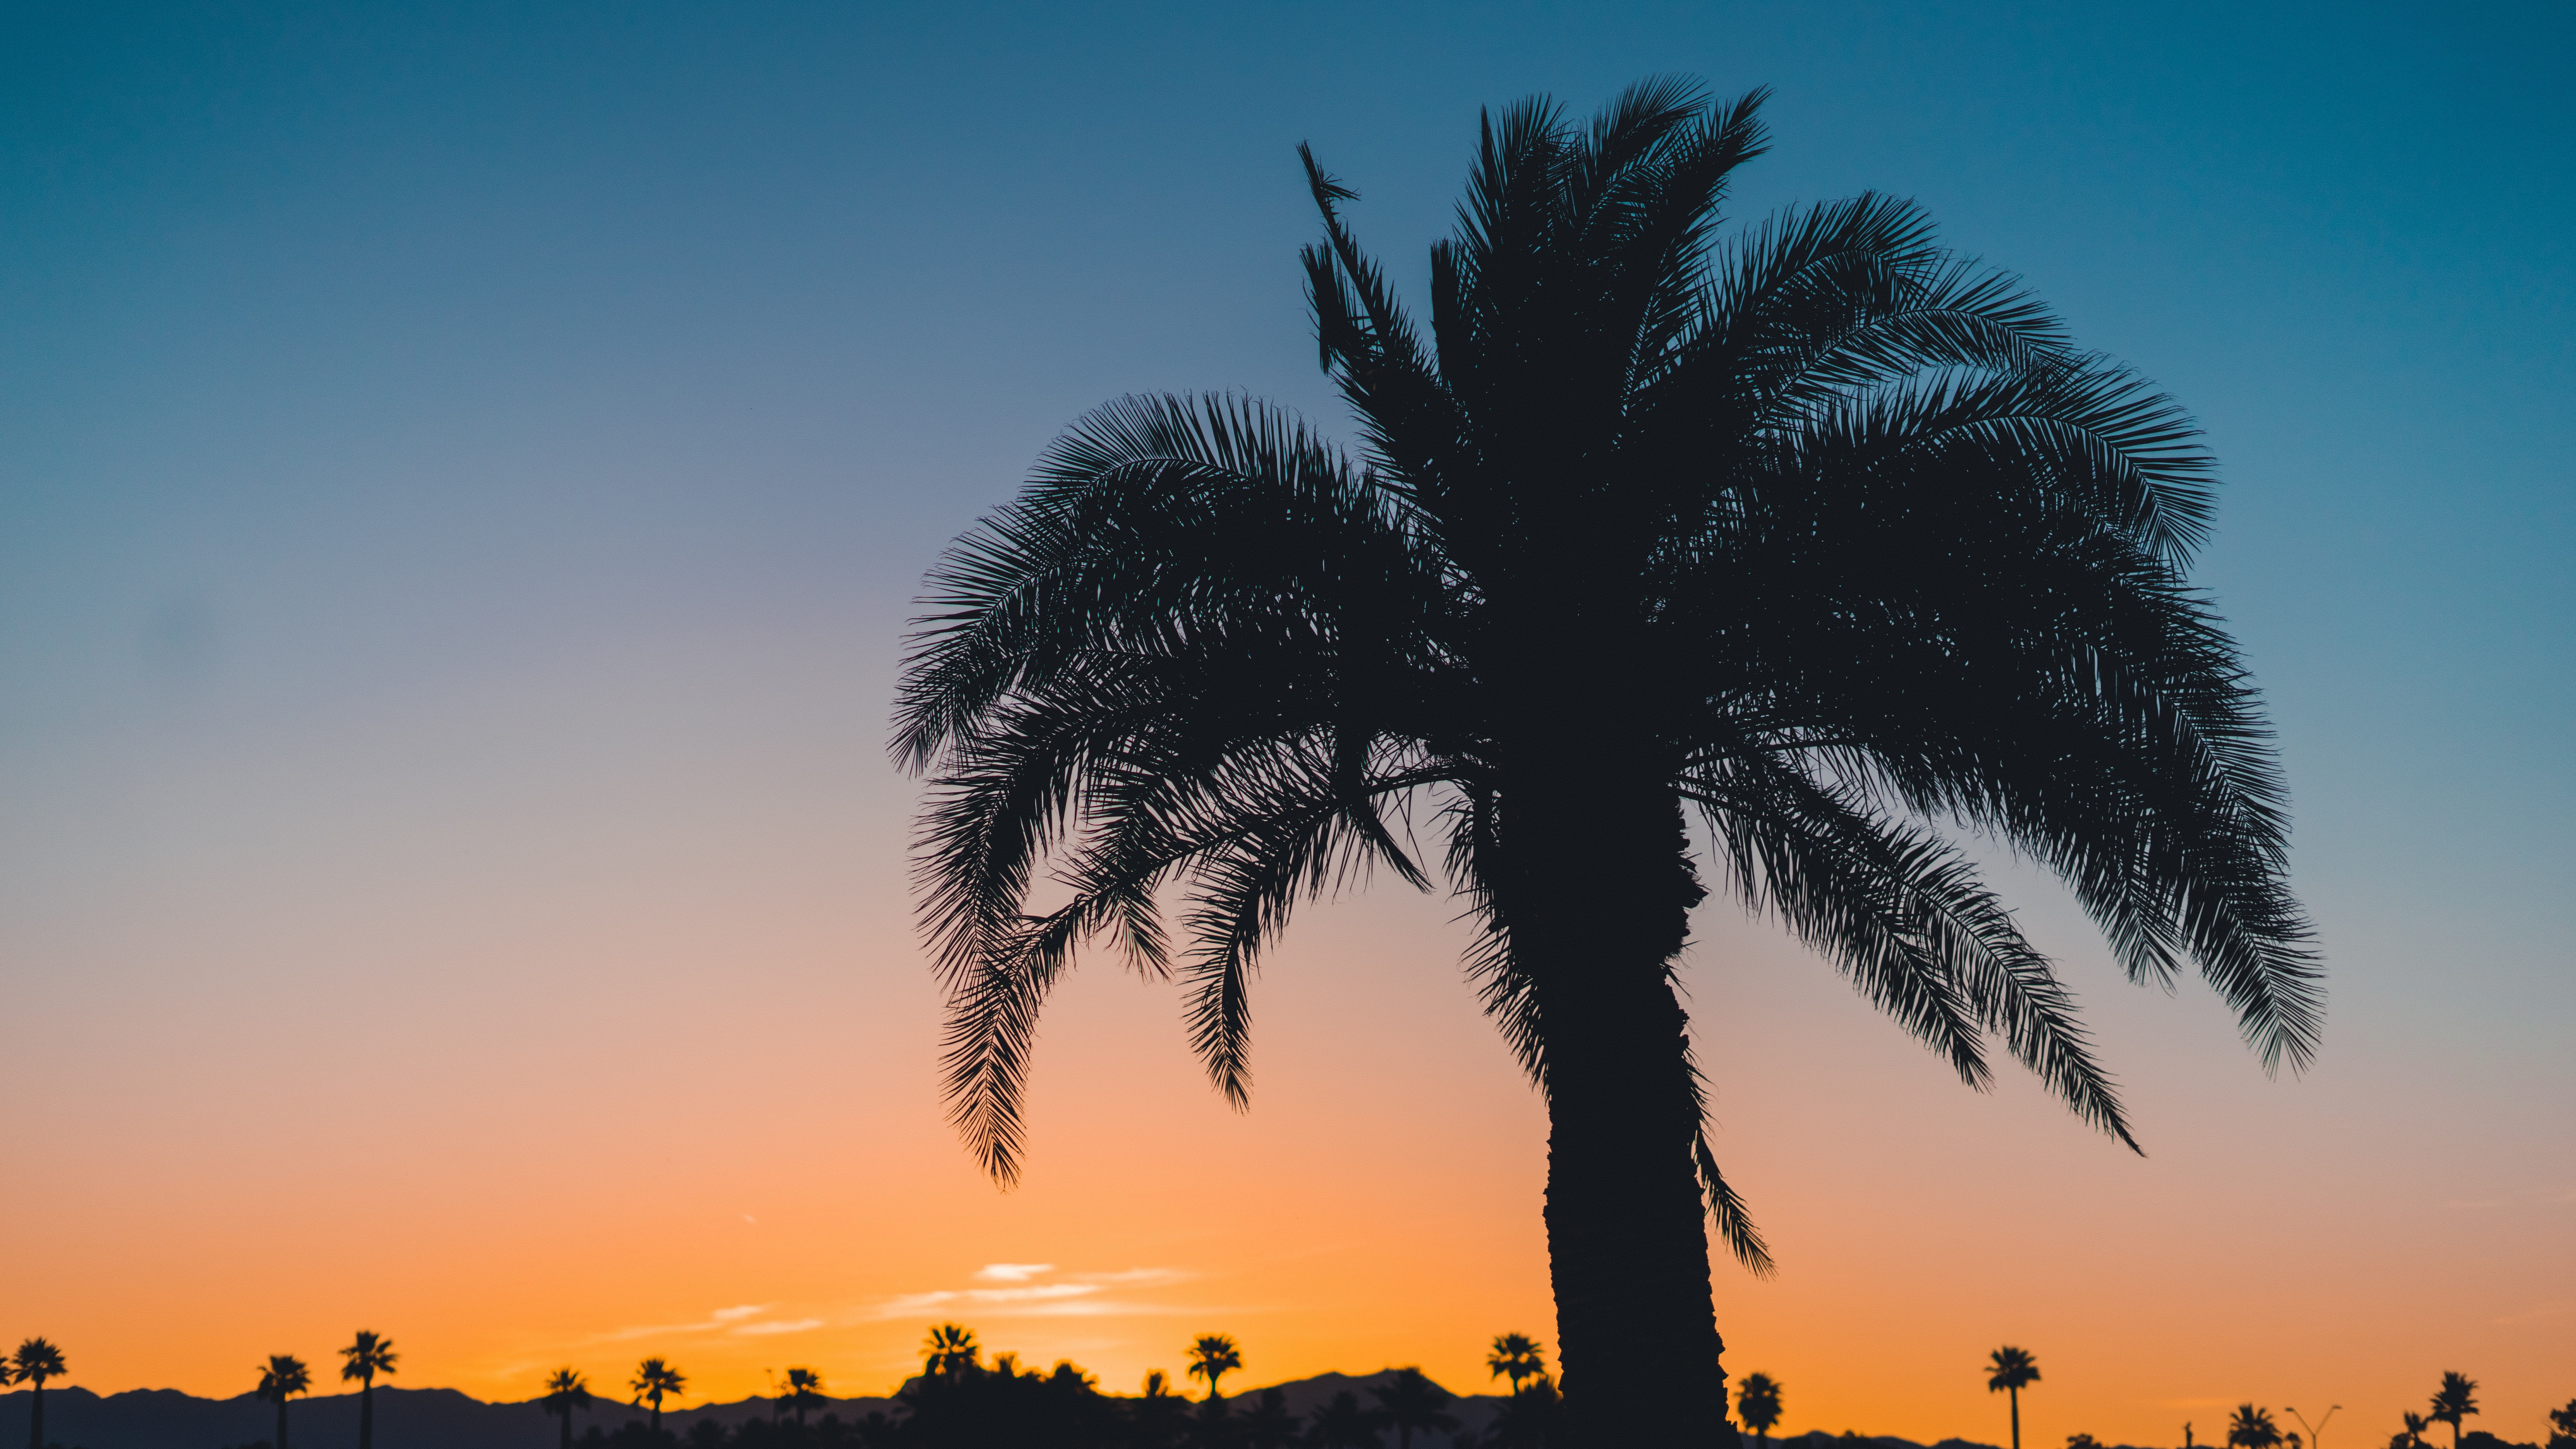 A silhouette of a large palm tree, with others in the distance, at sunset of Goodyear